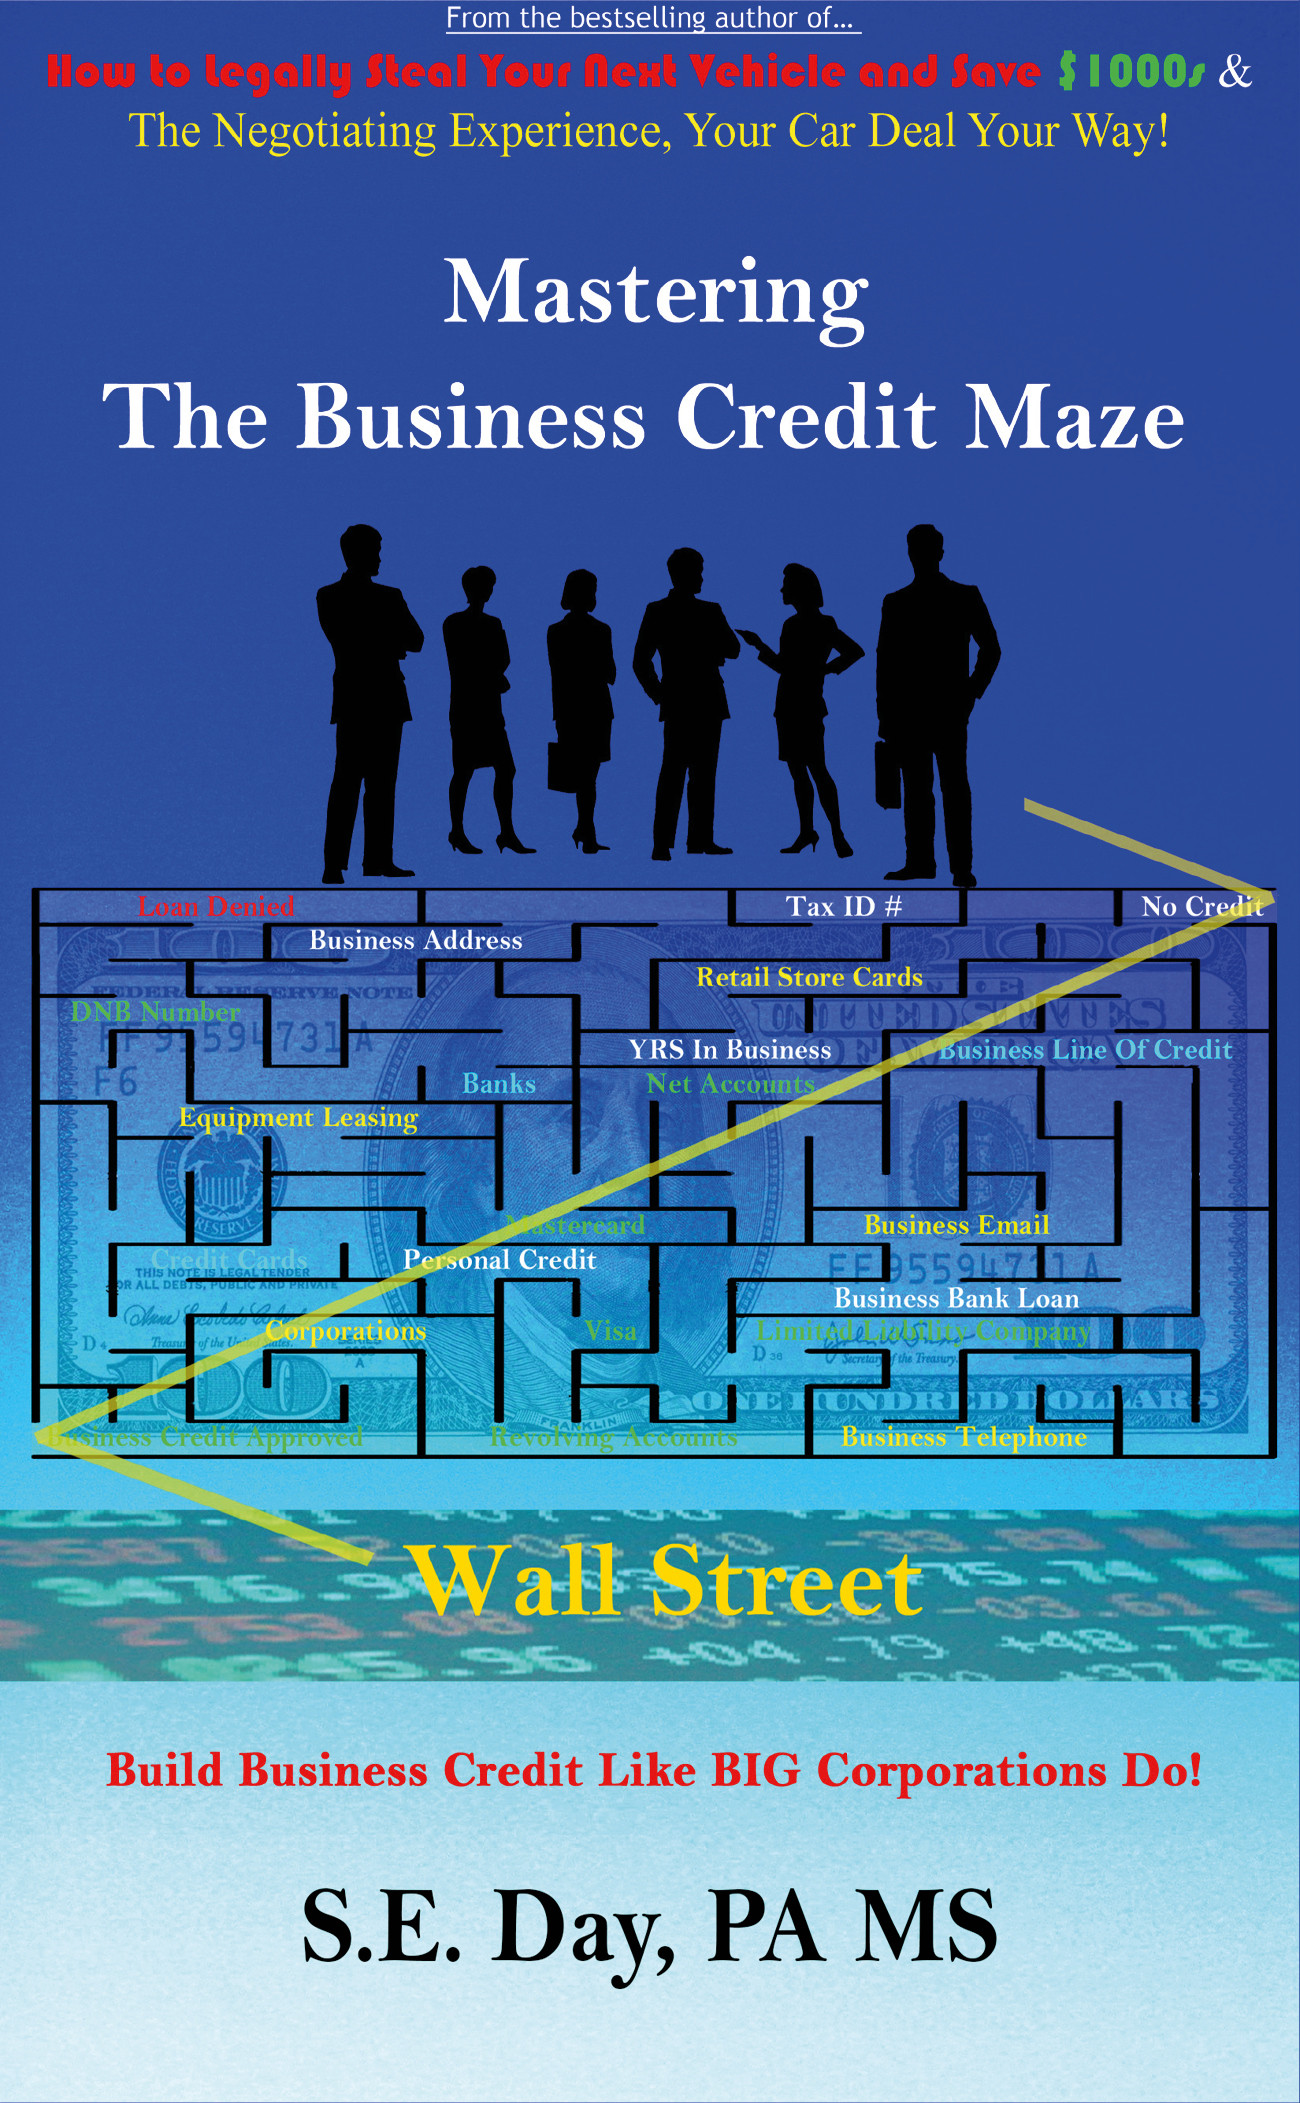 Mastering the Business Credit